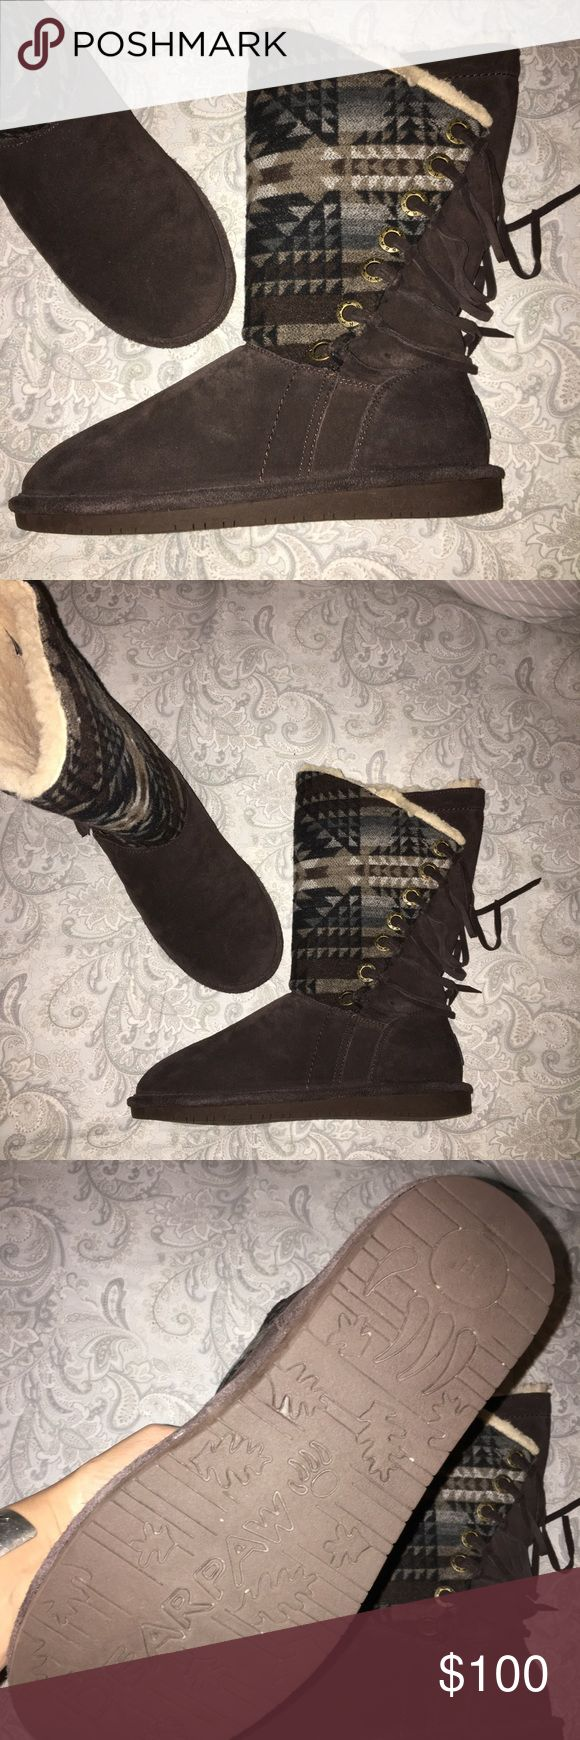 🌵BEARPAW🌵FRINGE SHEARLING BOOTS Southwest Aztec design fringe shearling suede boots. Worn once like new. Offers welcome. BearPaw Shoes